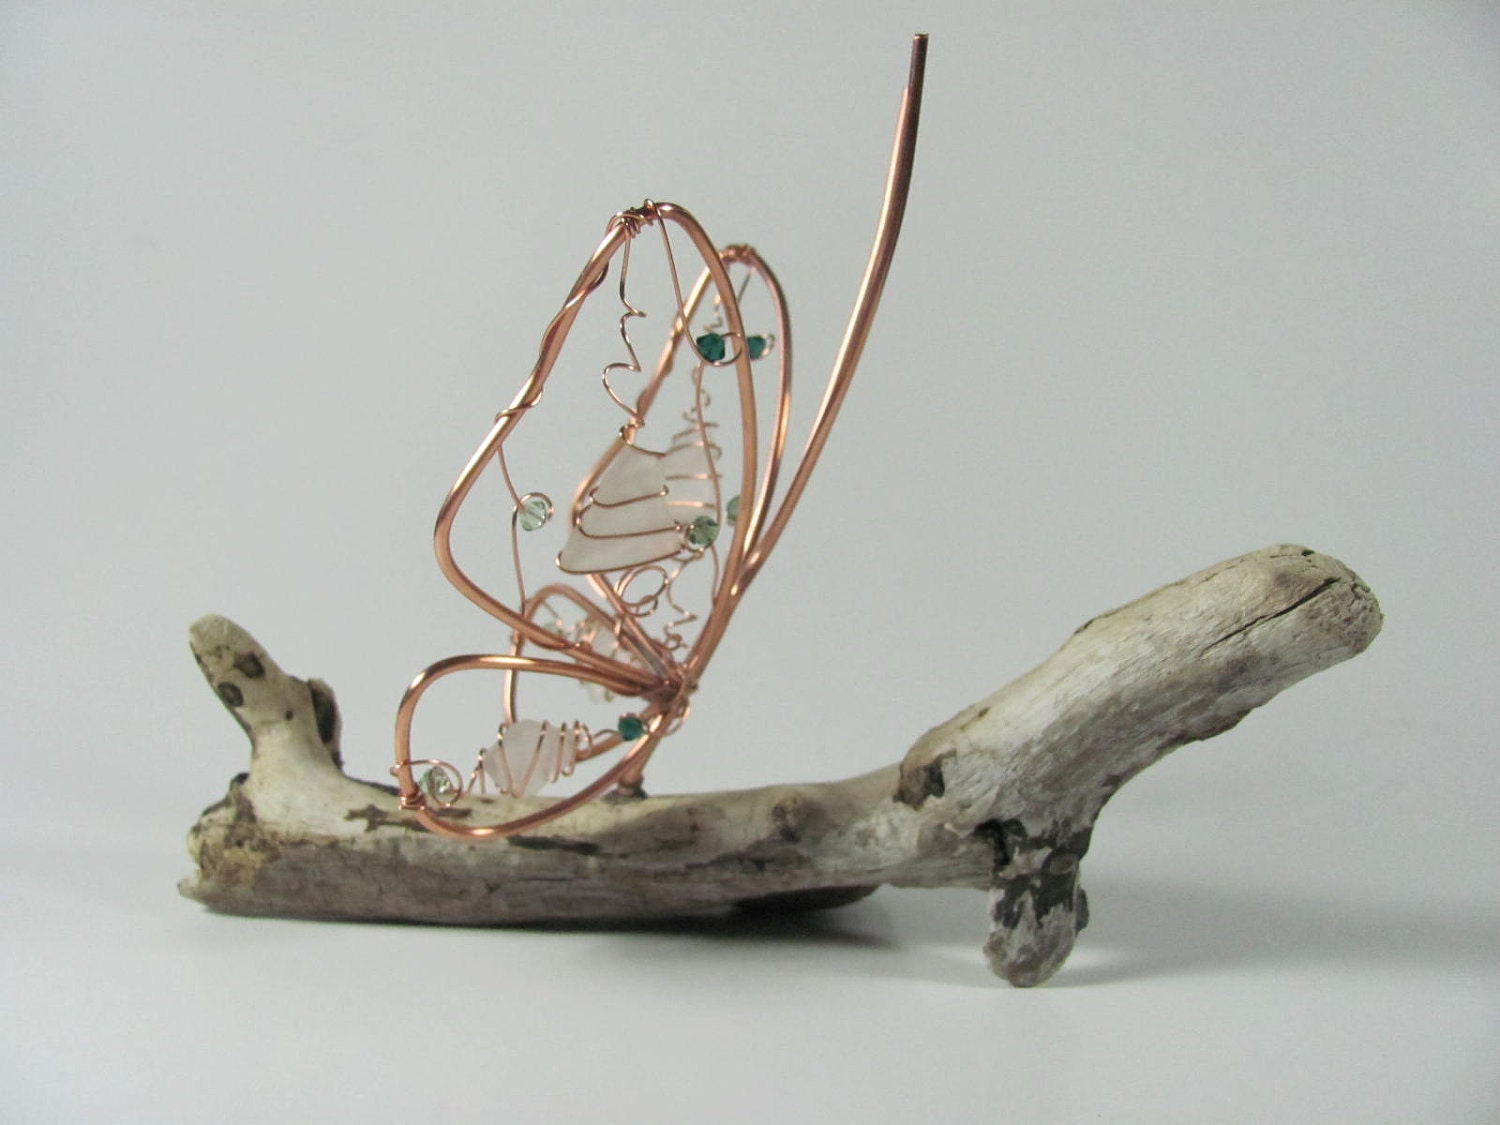 Copper wire butterfly sea glass natural driftwood sculpture art decoration Swarovski crystal upcycled home decor - metamorphosea